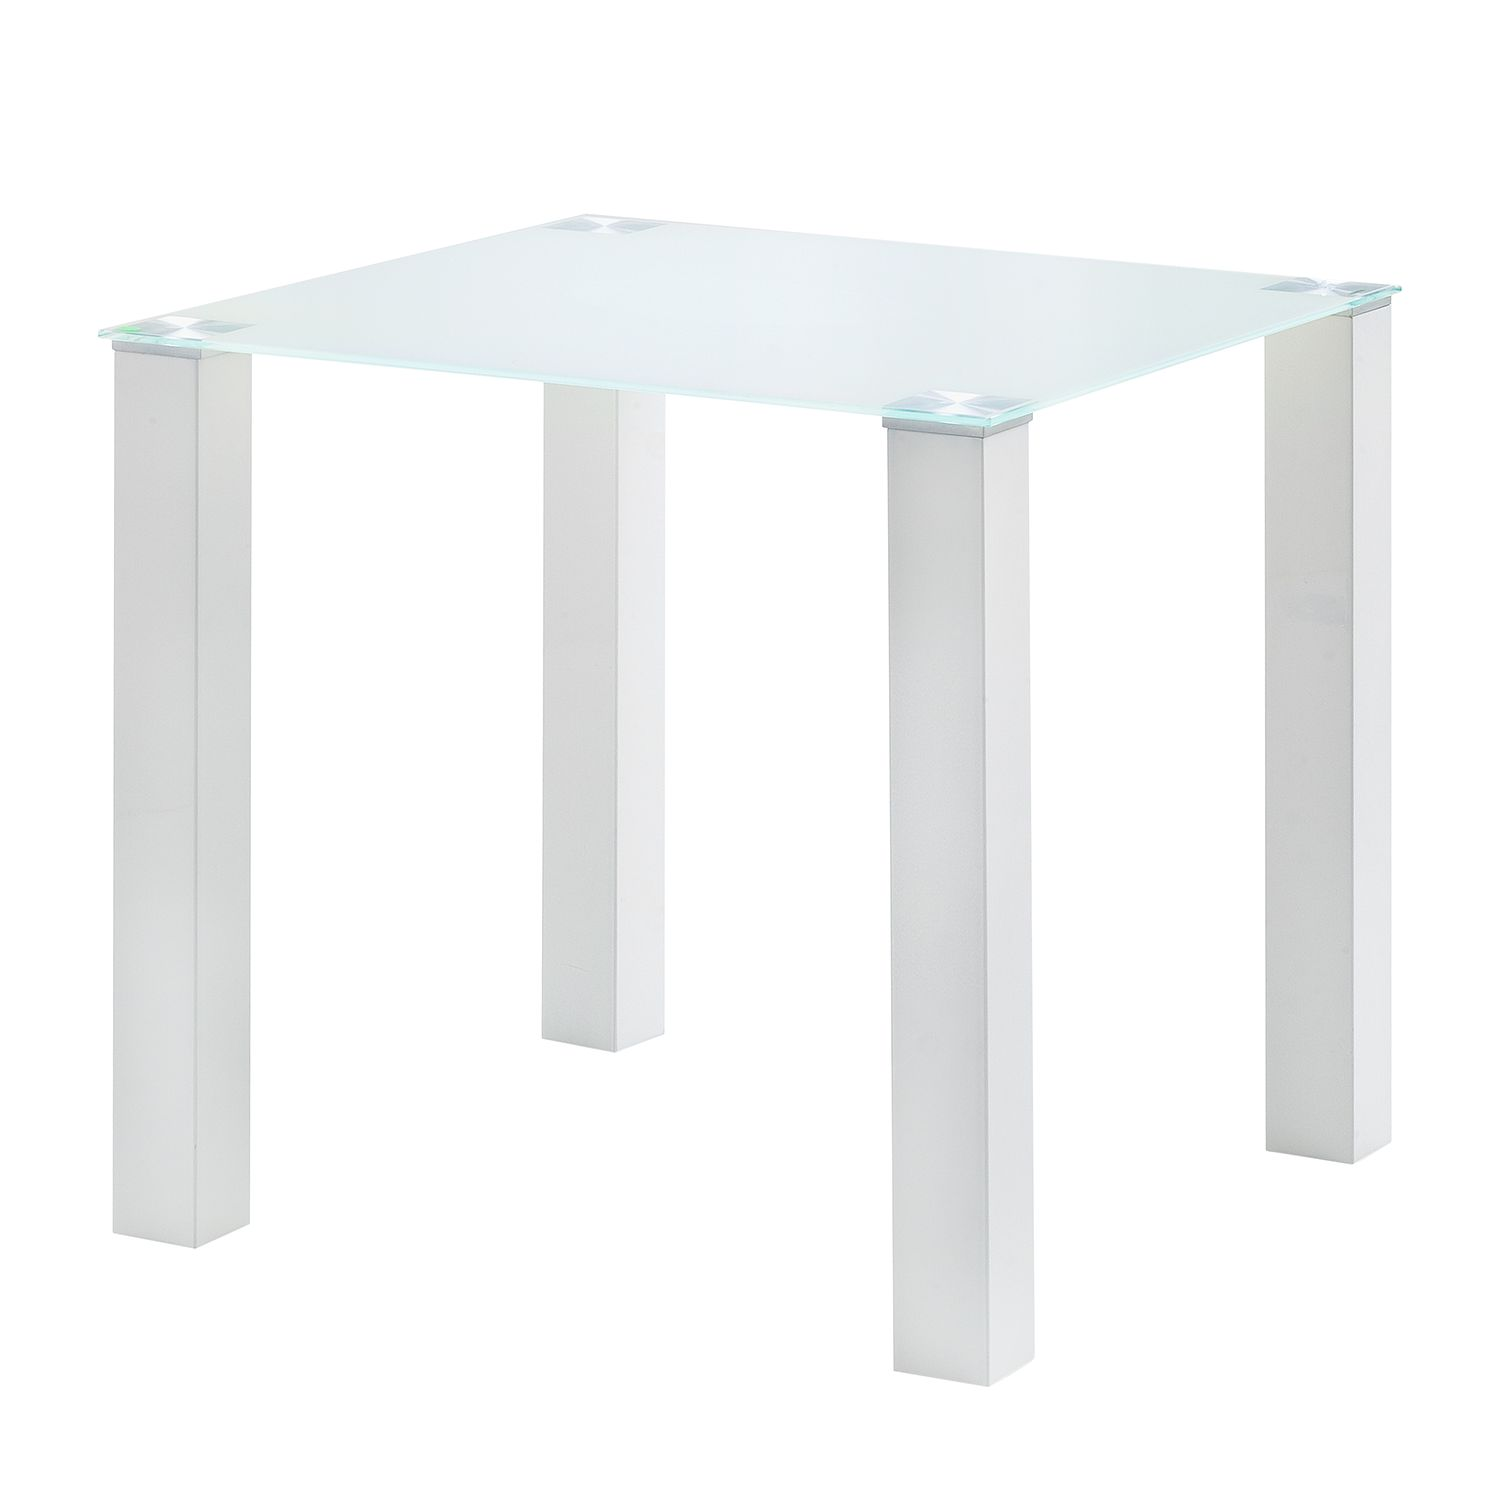 Eettafel Monty I - Wit, roomscape